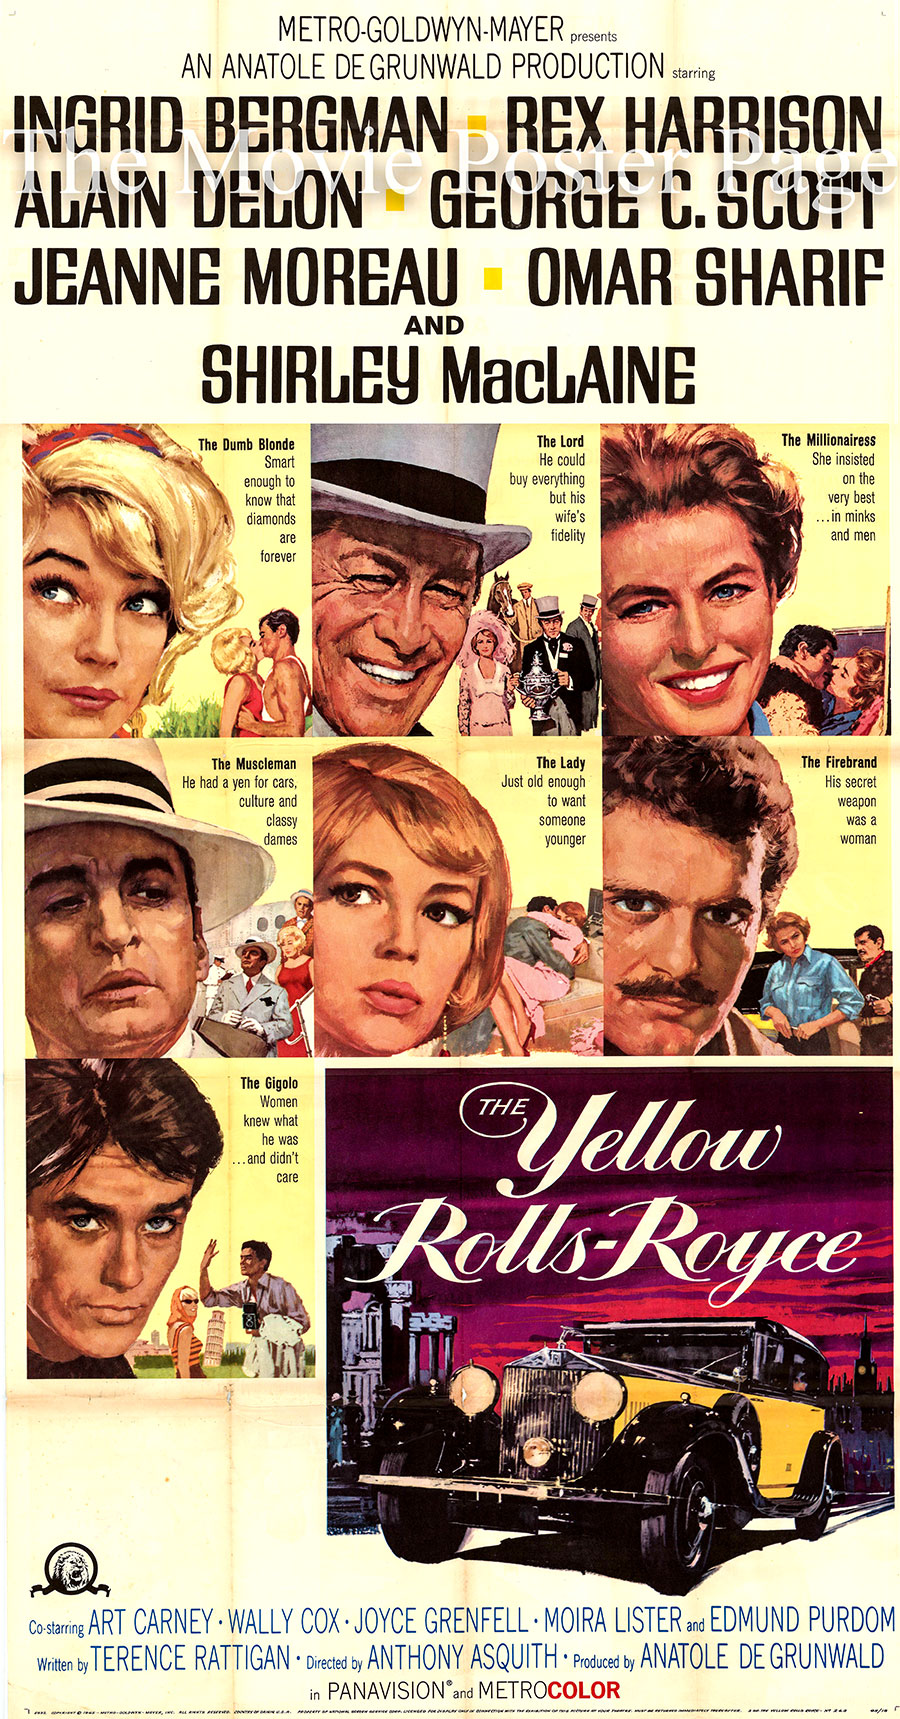 Pictured is a US three-sheet poster for the 1964 Anthony Asquith film The Yellow Rolls Royce, starring Ingrid Bergman as Gerda Millett.